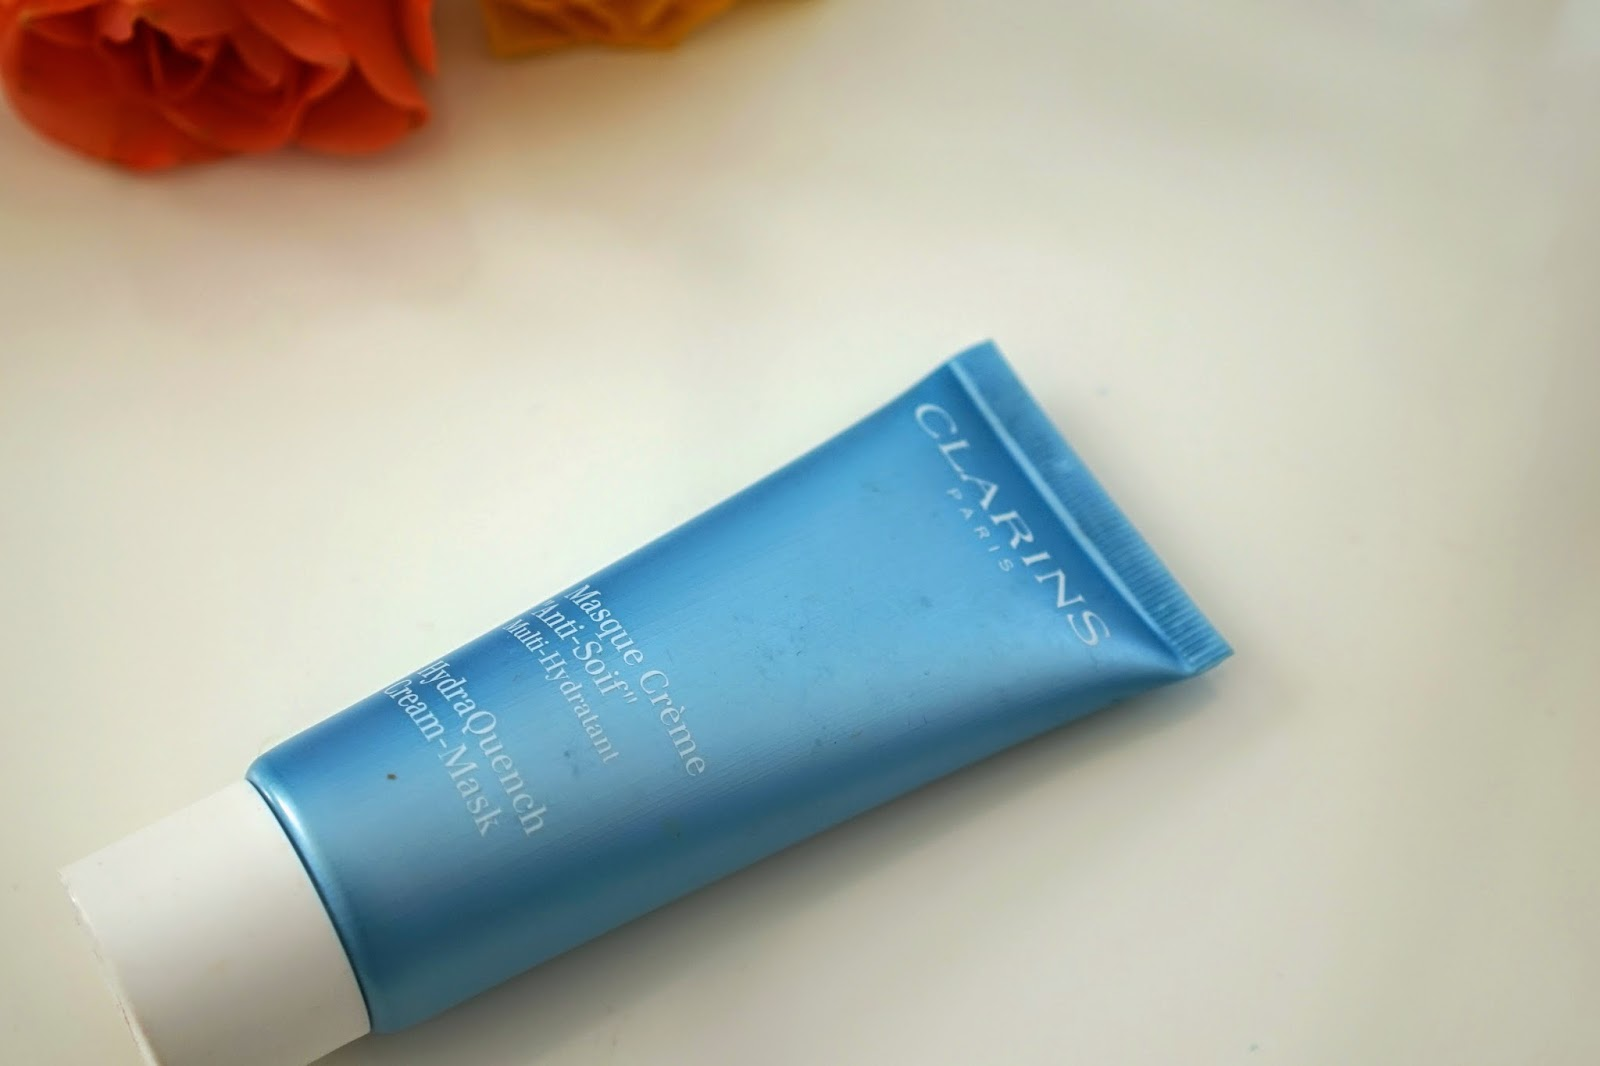 clarins hydraquench face mask